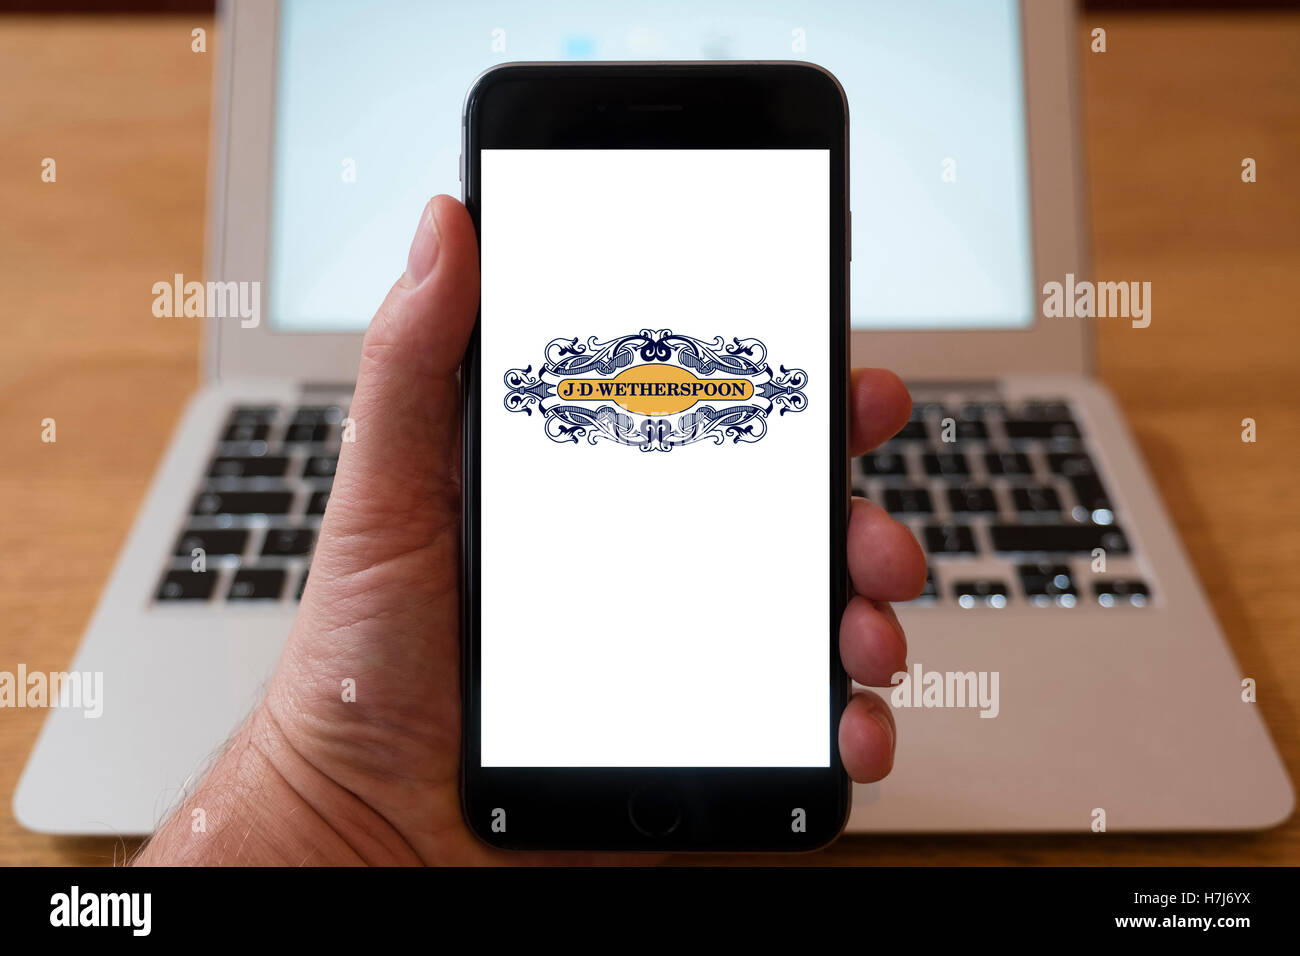 Using iPhone smartphone to display logo of JD Wetherspoons pub chain - Stock Image